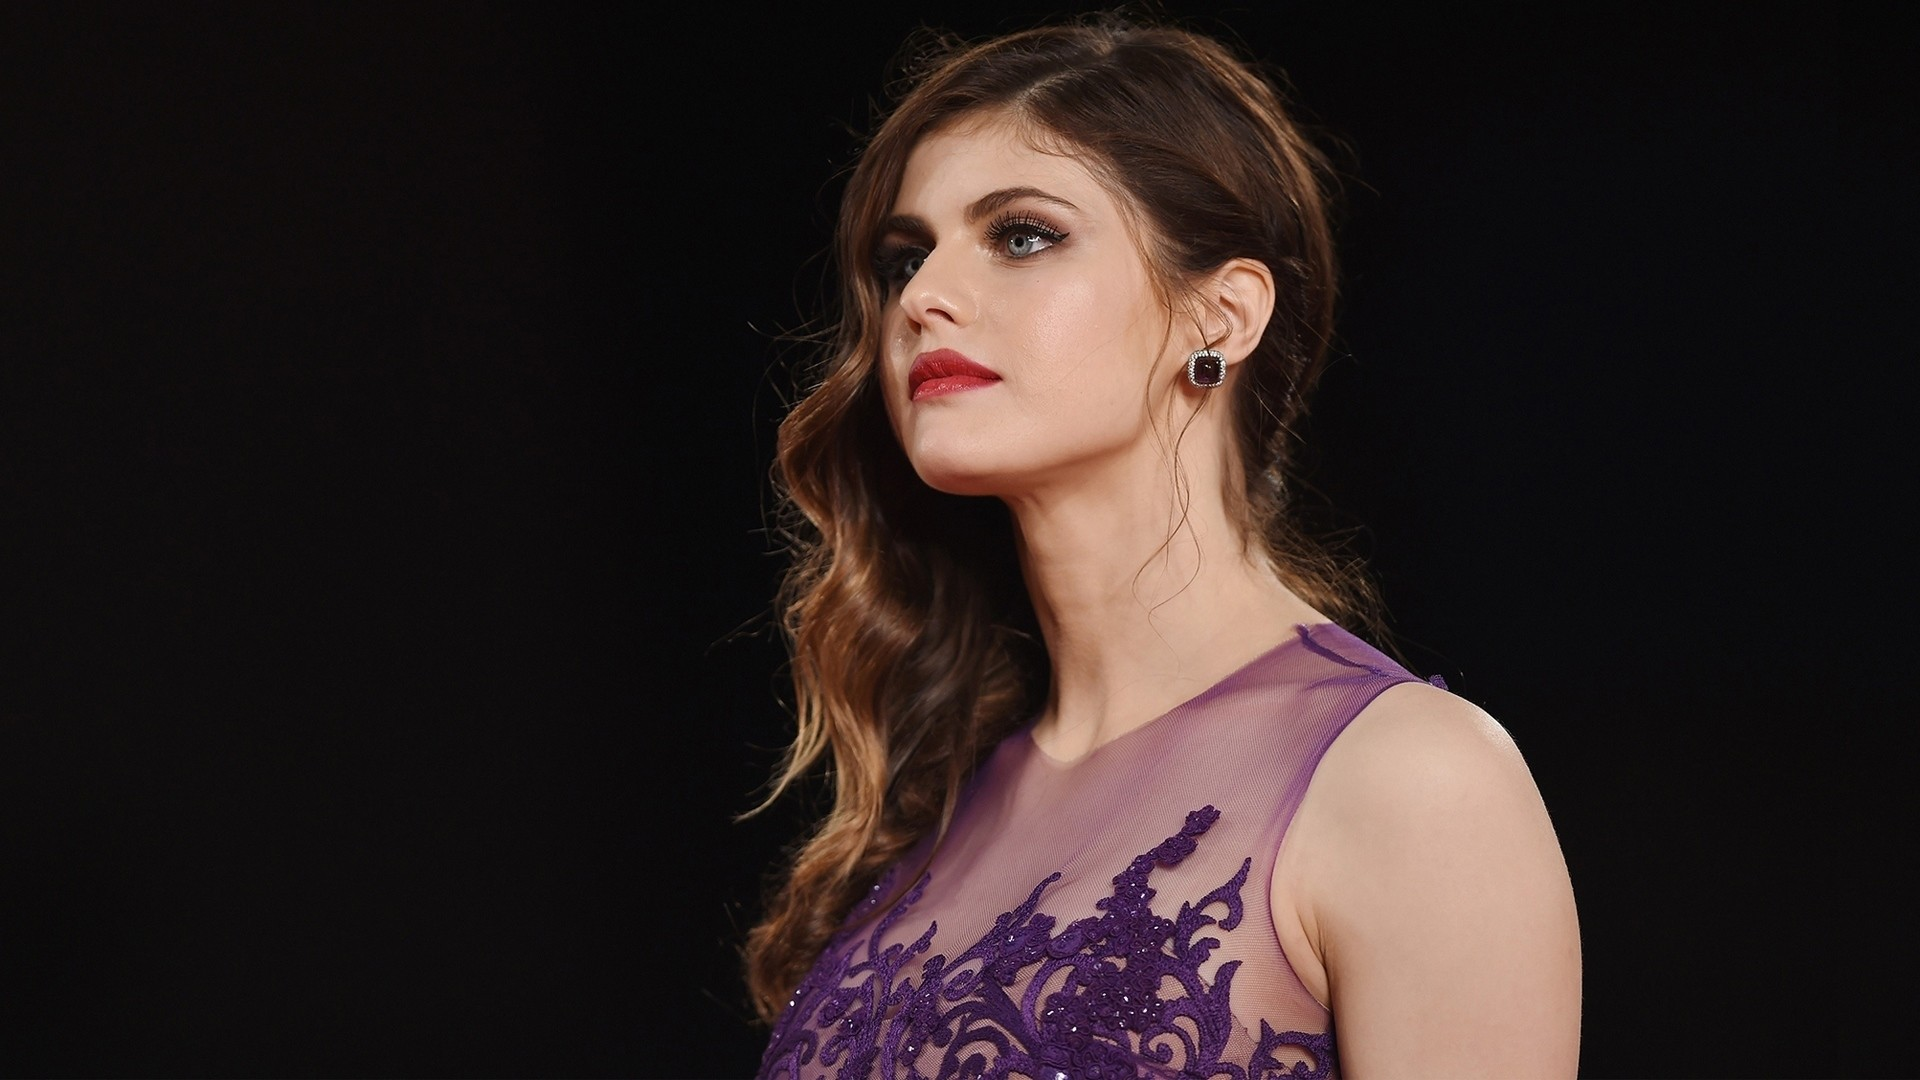 Alexandra Daddario free download wallpaper